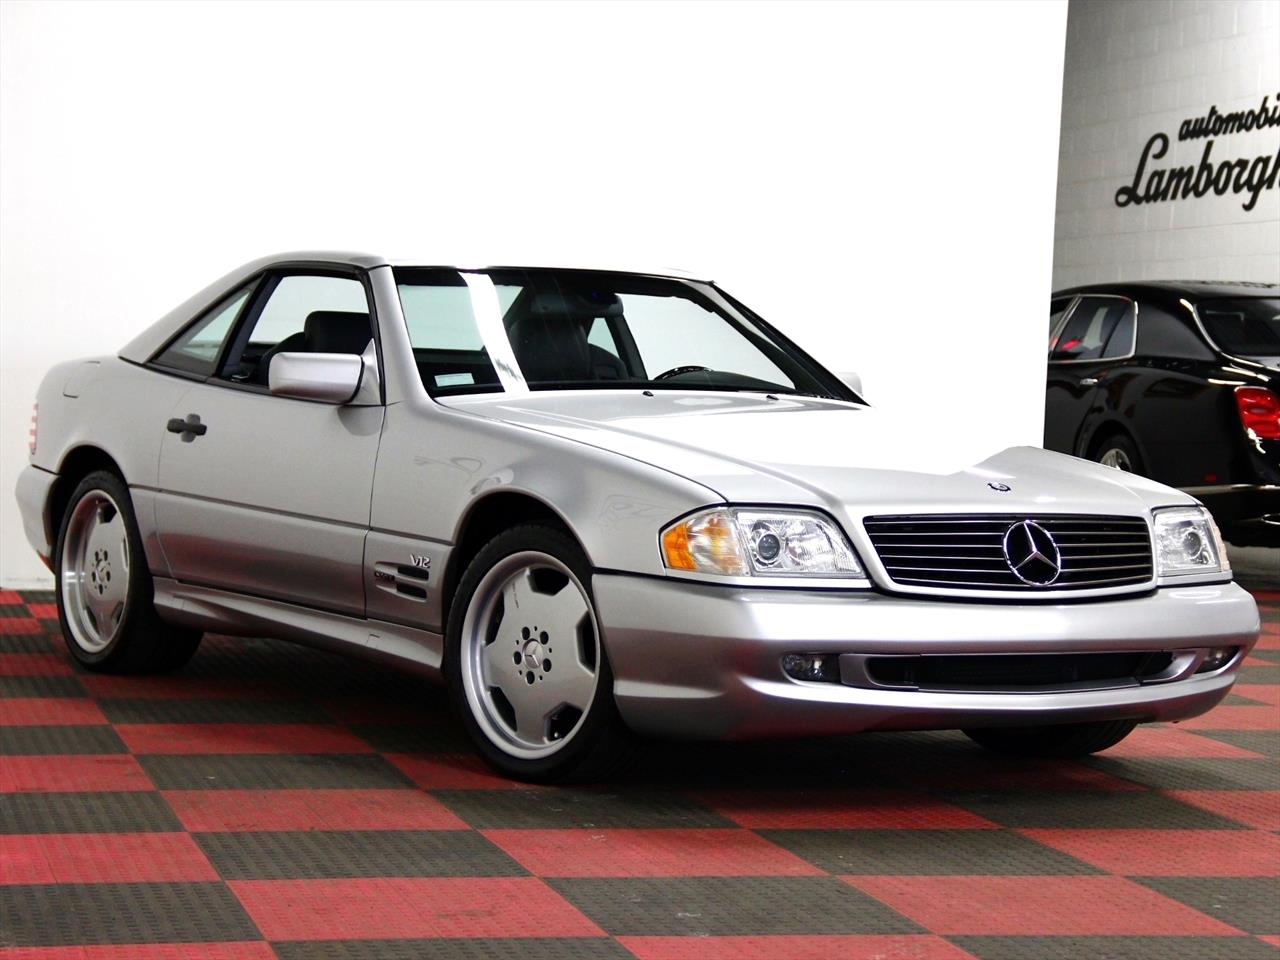 1998 mercedes benz sl 600. Black Bedroom Furniture Sets. Home Design Ideas